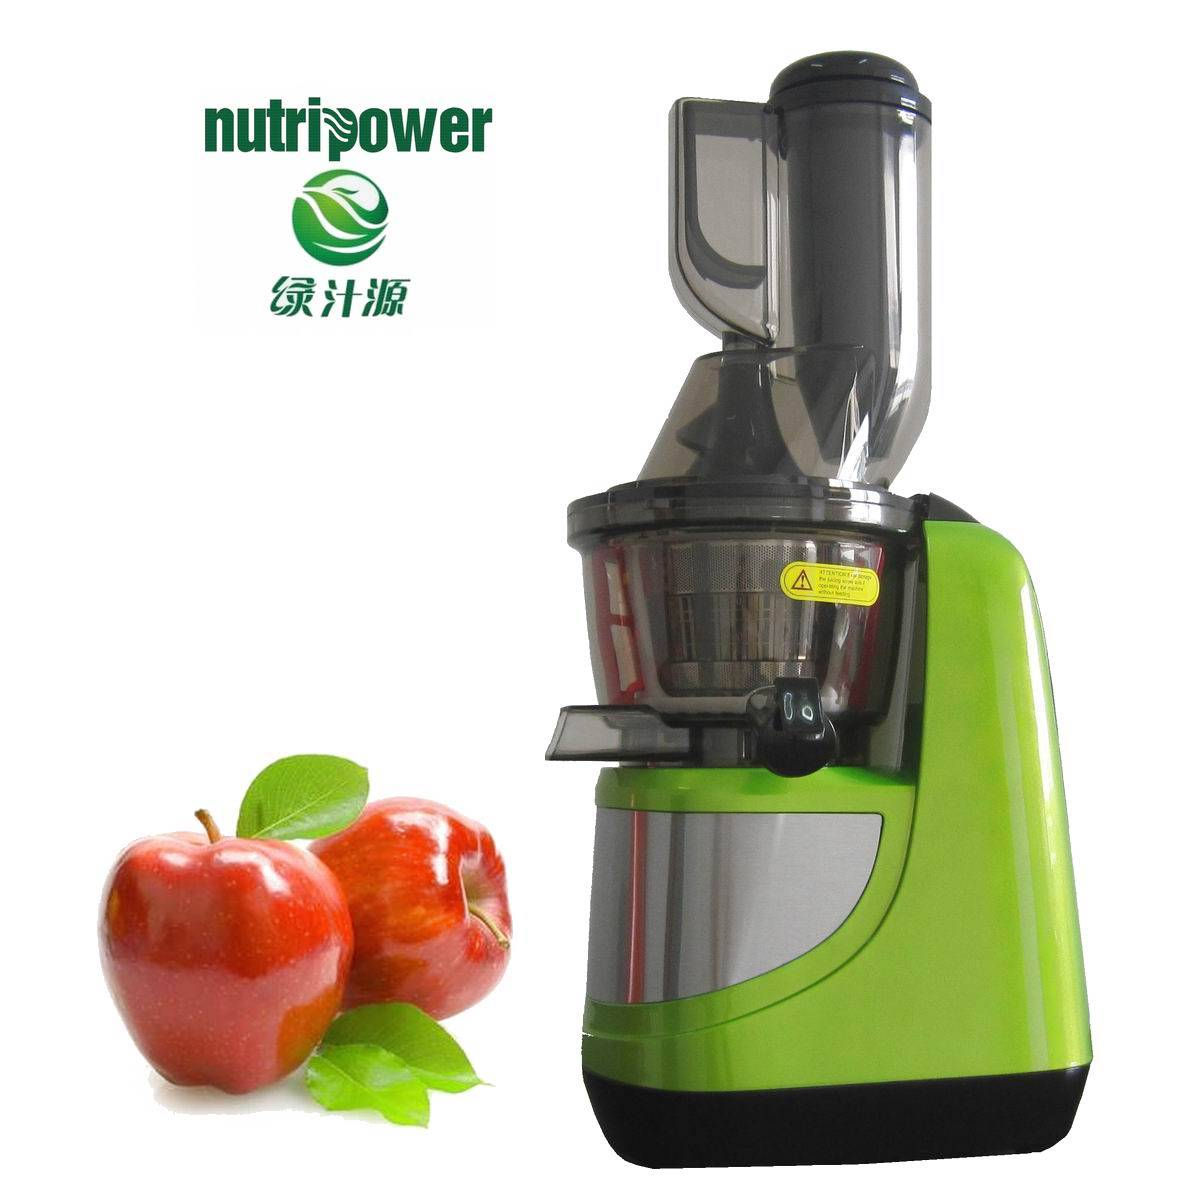 Best Wide Mouth Slow Juicer : Wide mouth whole slow cold press juicer - Zhongshan Honghao Electrical Appliances Co., Ltd.